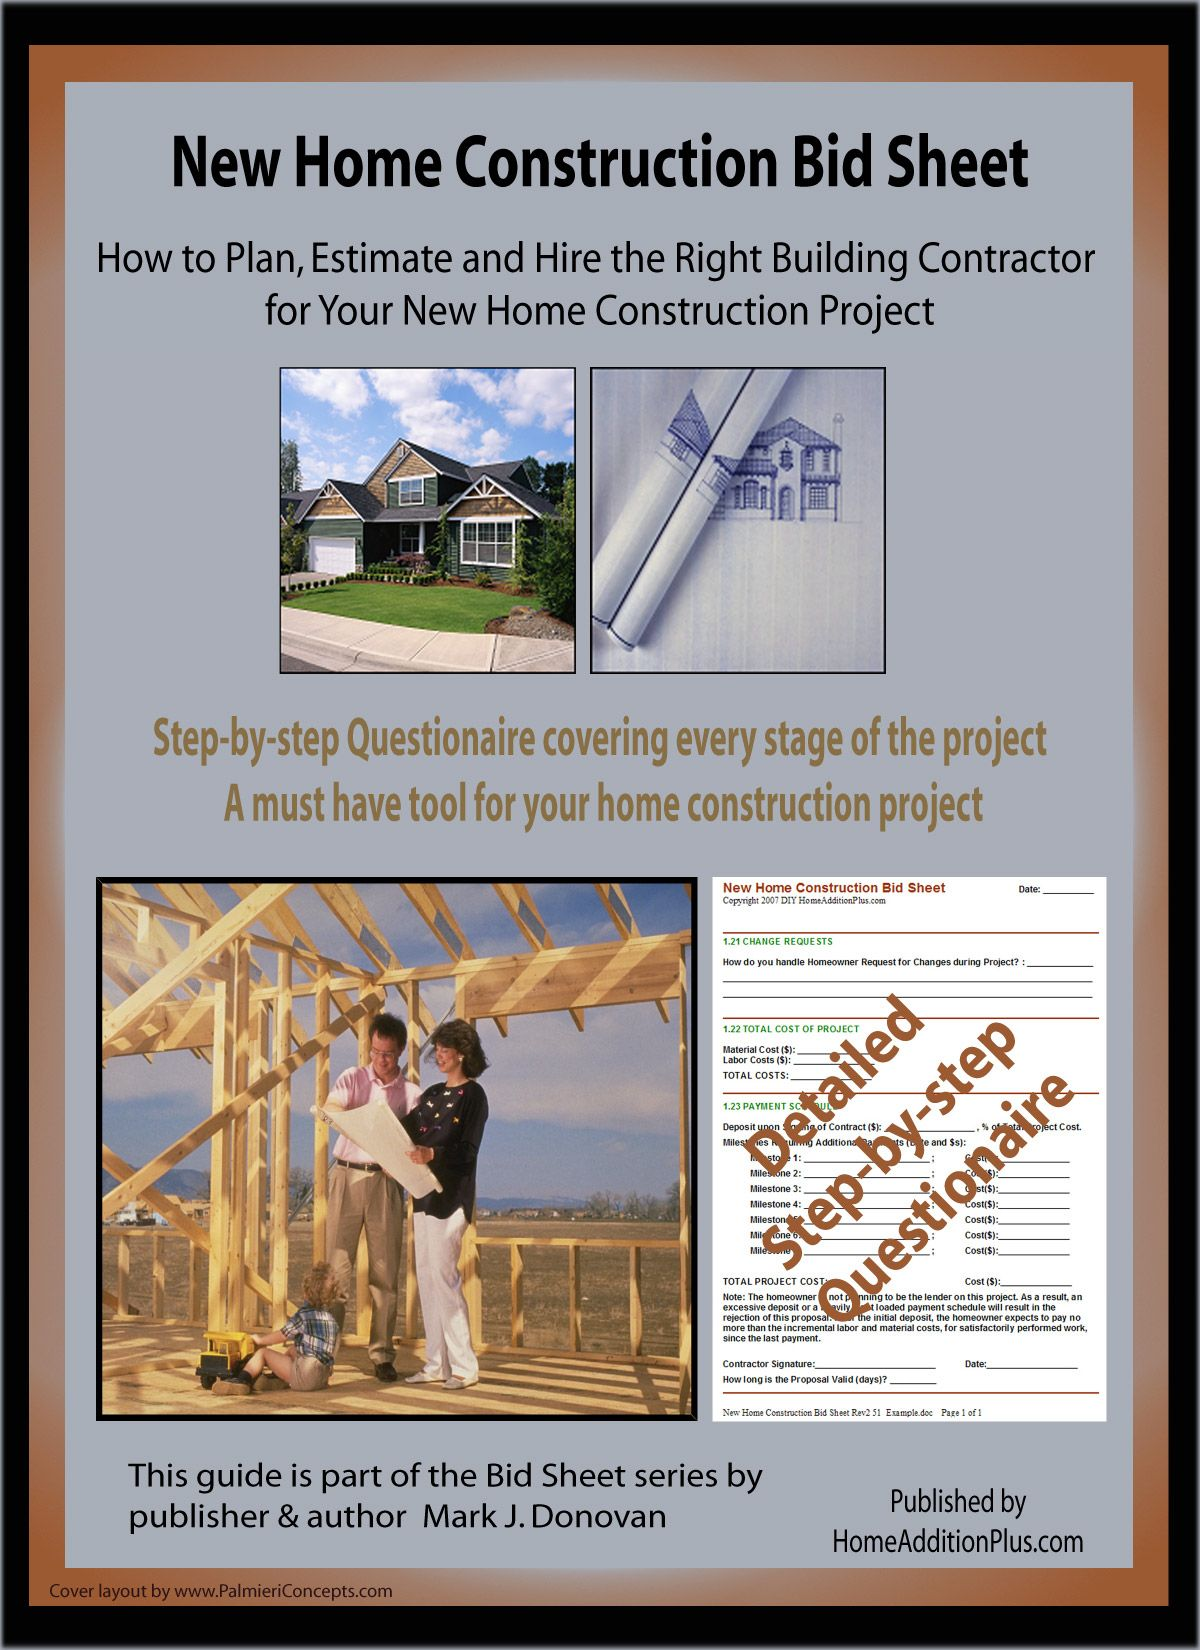 Great Here Is A New Home Construction Bid Sheet For Helping Soon To Be